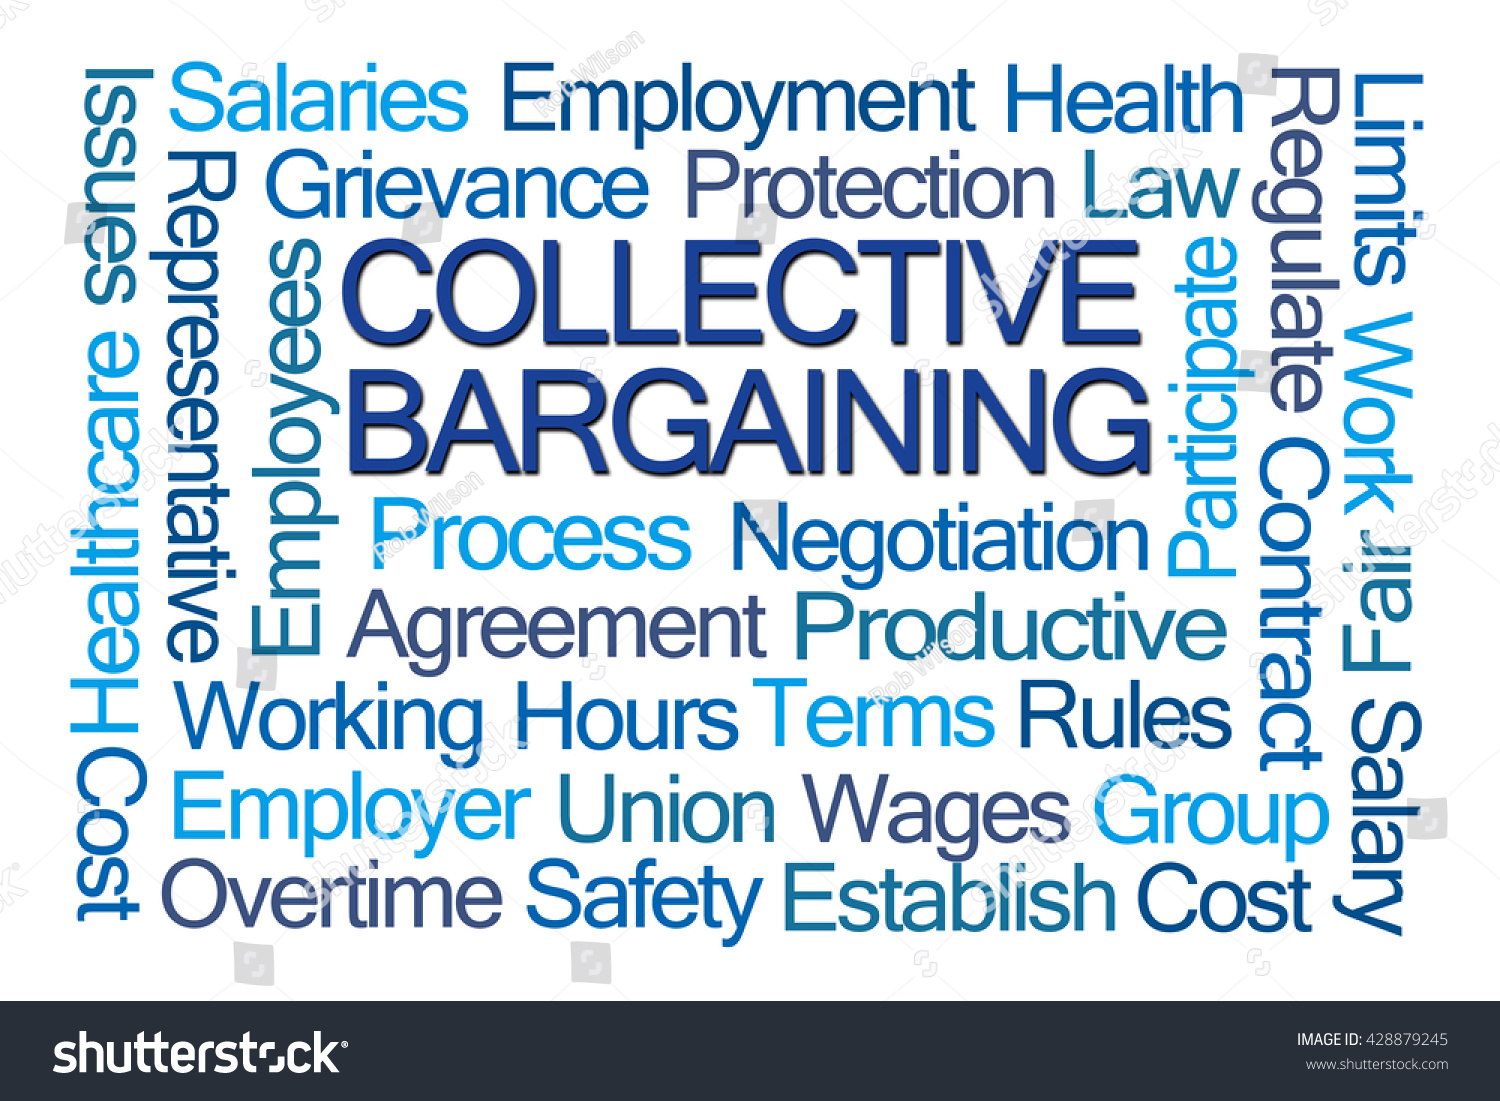 what is collective bargaining Collective bargaining definition collective bargaining is the formal process of negotiation between an employer and a group of employees it usually relates to issues of employment, rights and conditions such as pay, rest and working time, work organisation and health and safety.